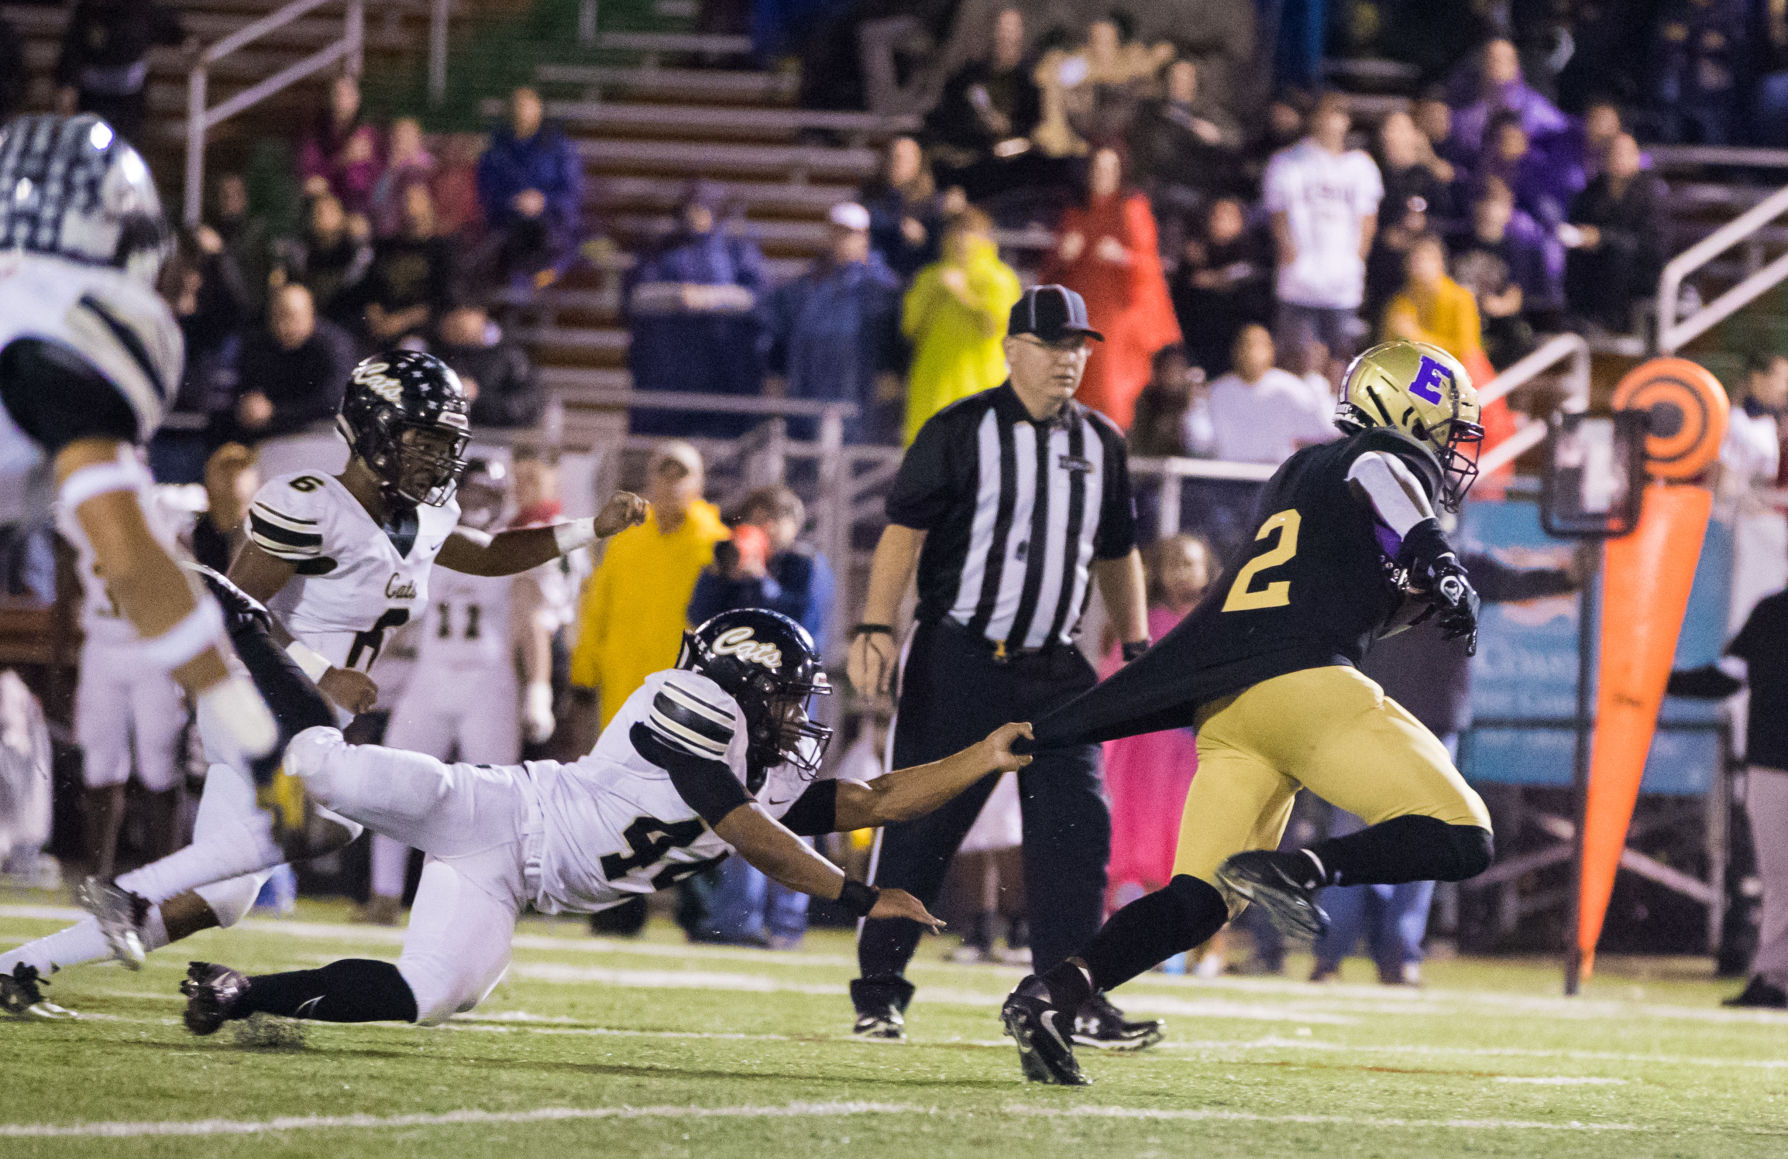 Replay: Warren Easton throttles Leesville, 54-14, to reach Class 4A title game